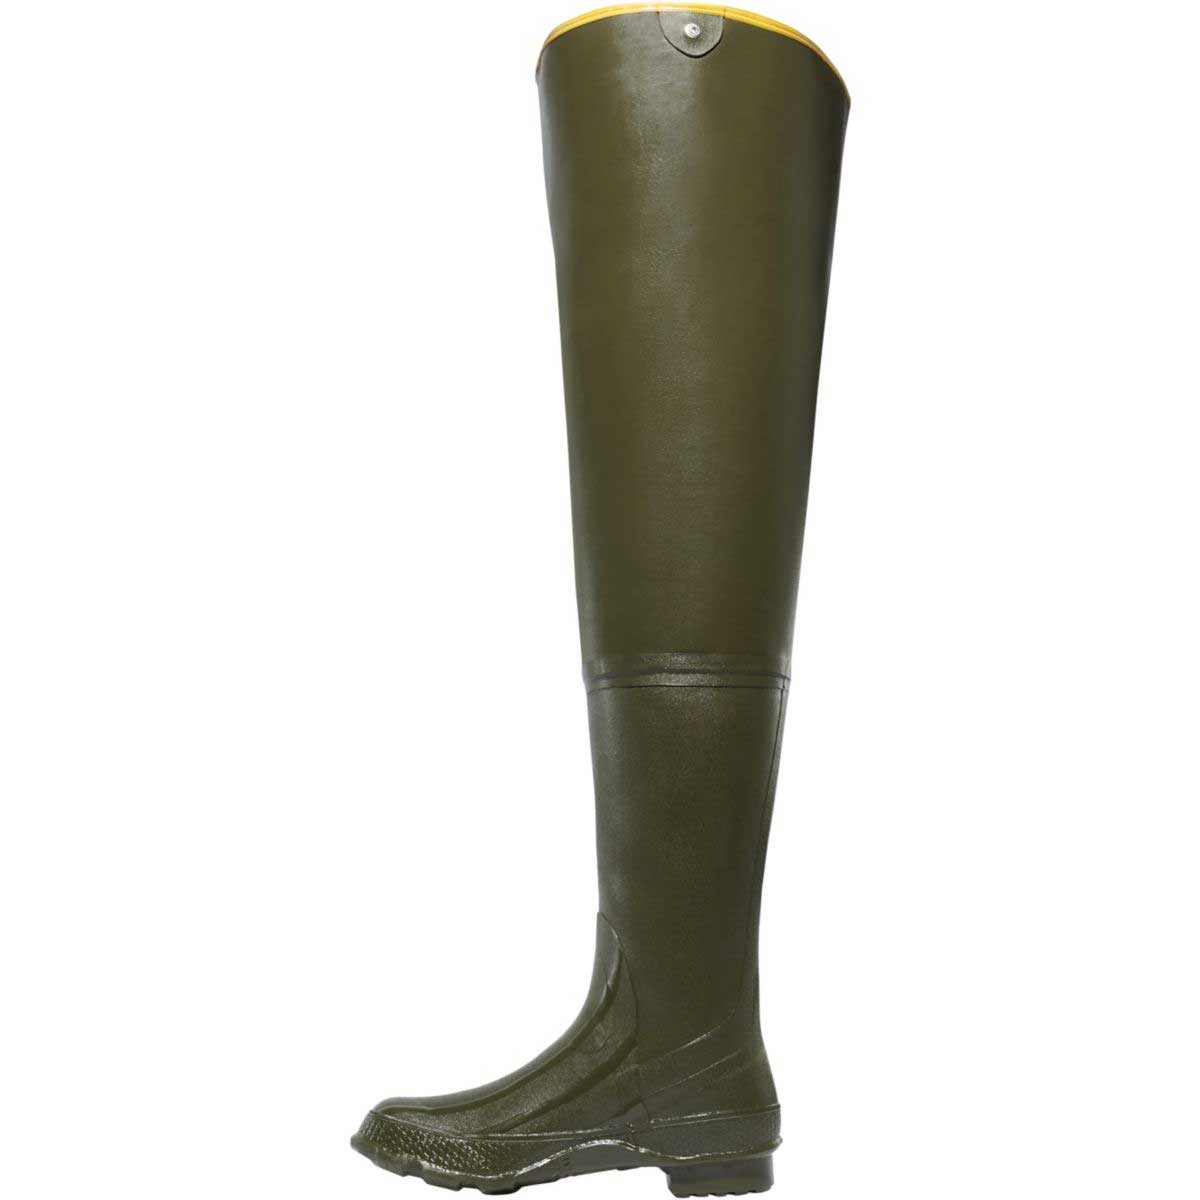 Lacrosse Big Chief Uninsulated Rubber Hip Wader Boot_4.jpg